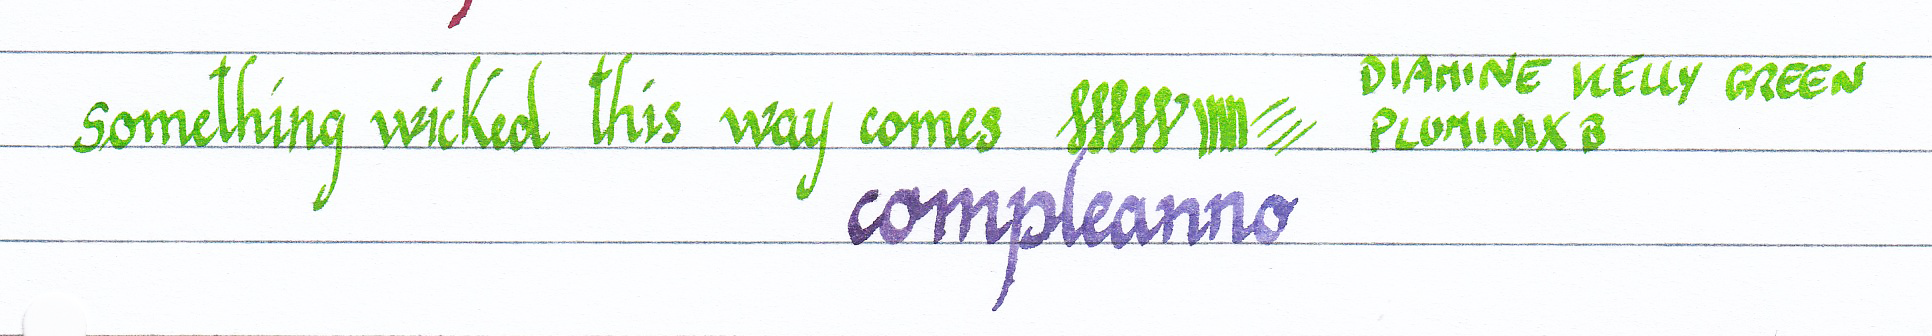 Diamine Kelly Green Something Wicked 01.png